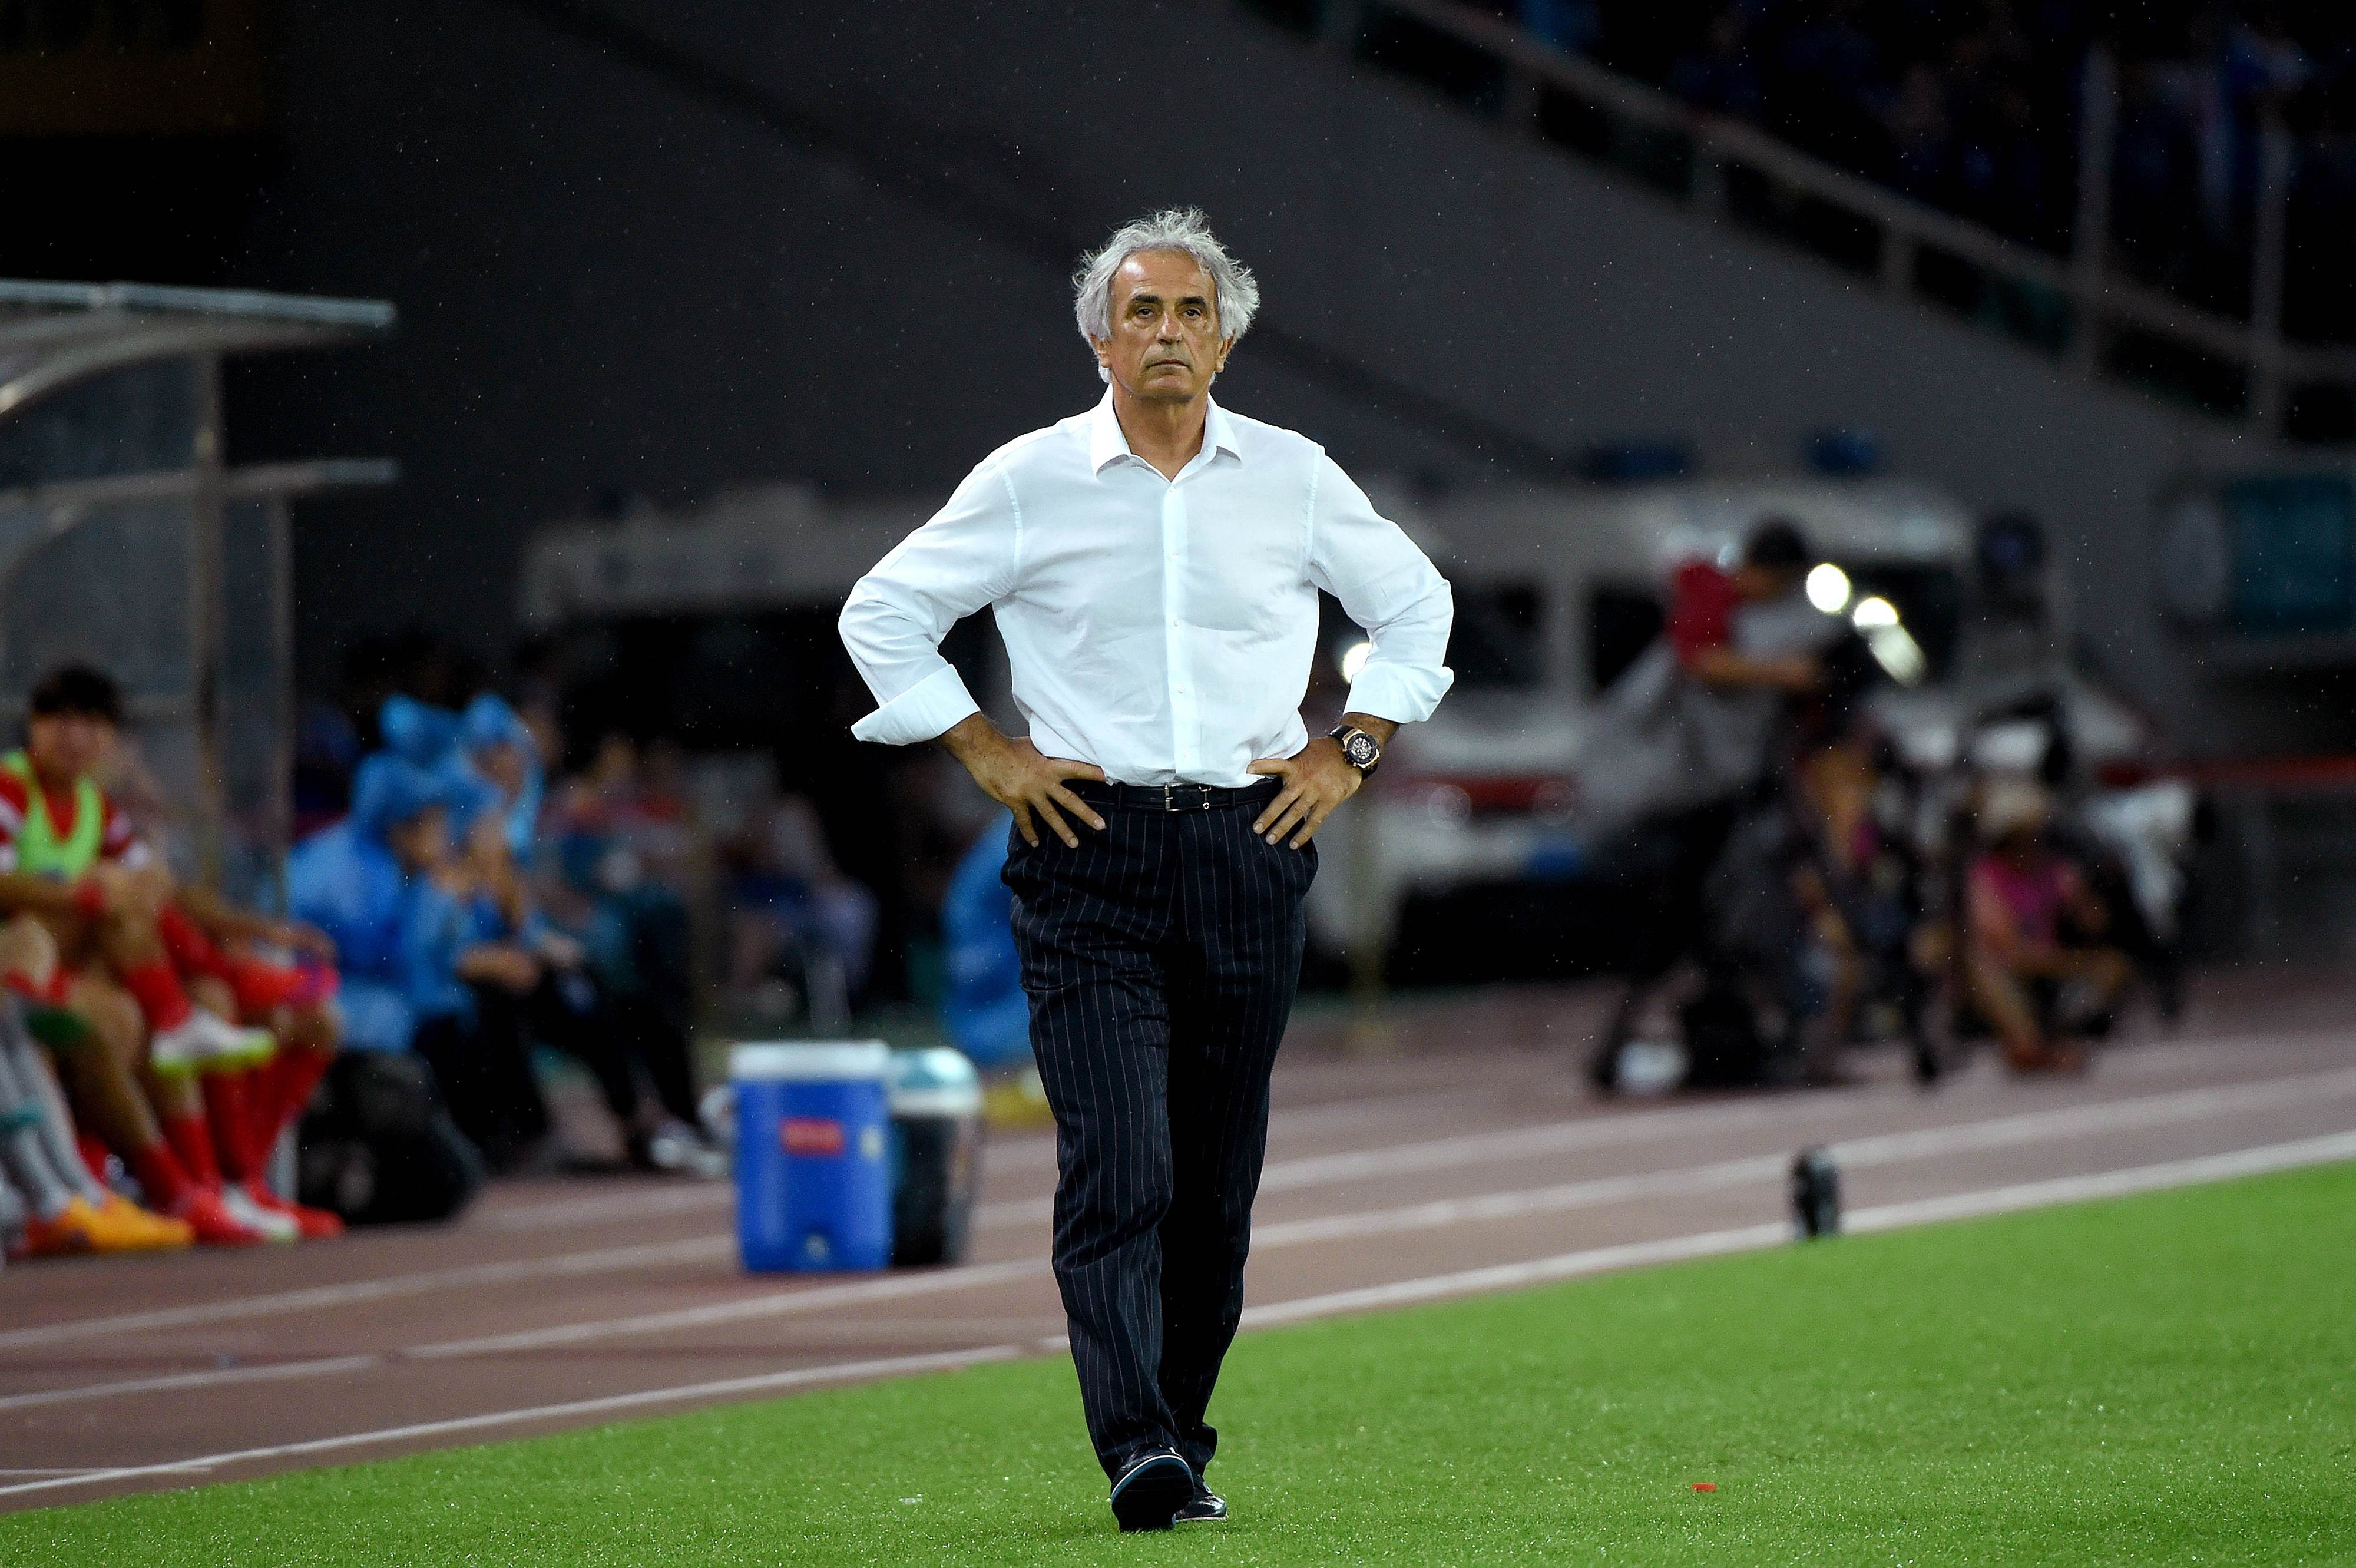 National team manager Vahid Halilhodzic has faced a backlash after failing to win a single game at the East Asian Cup in China last week. | AFP-JIJI